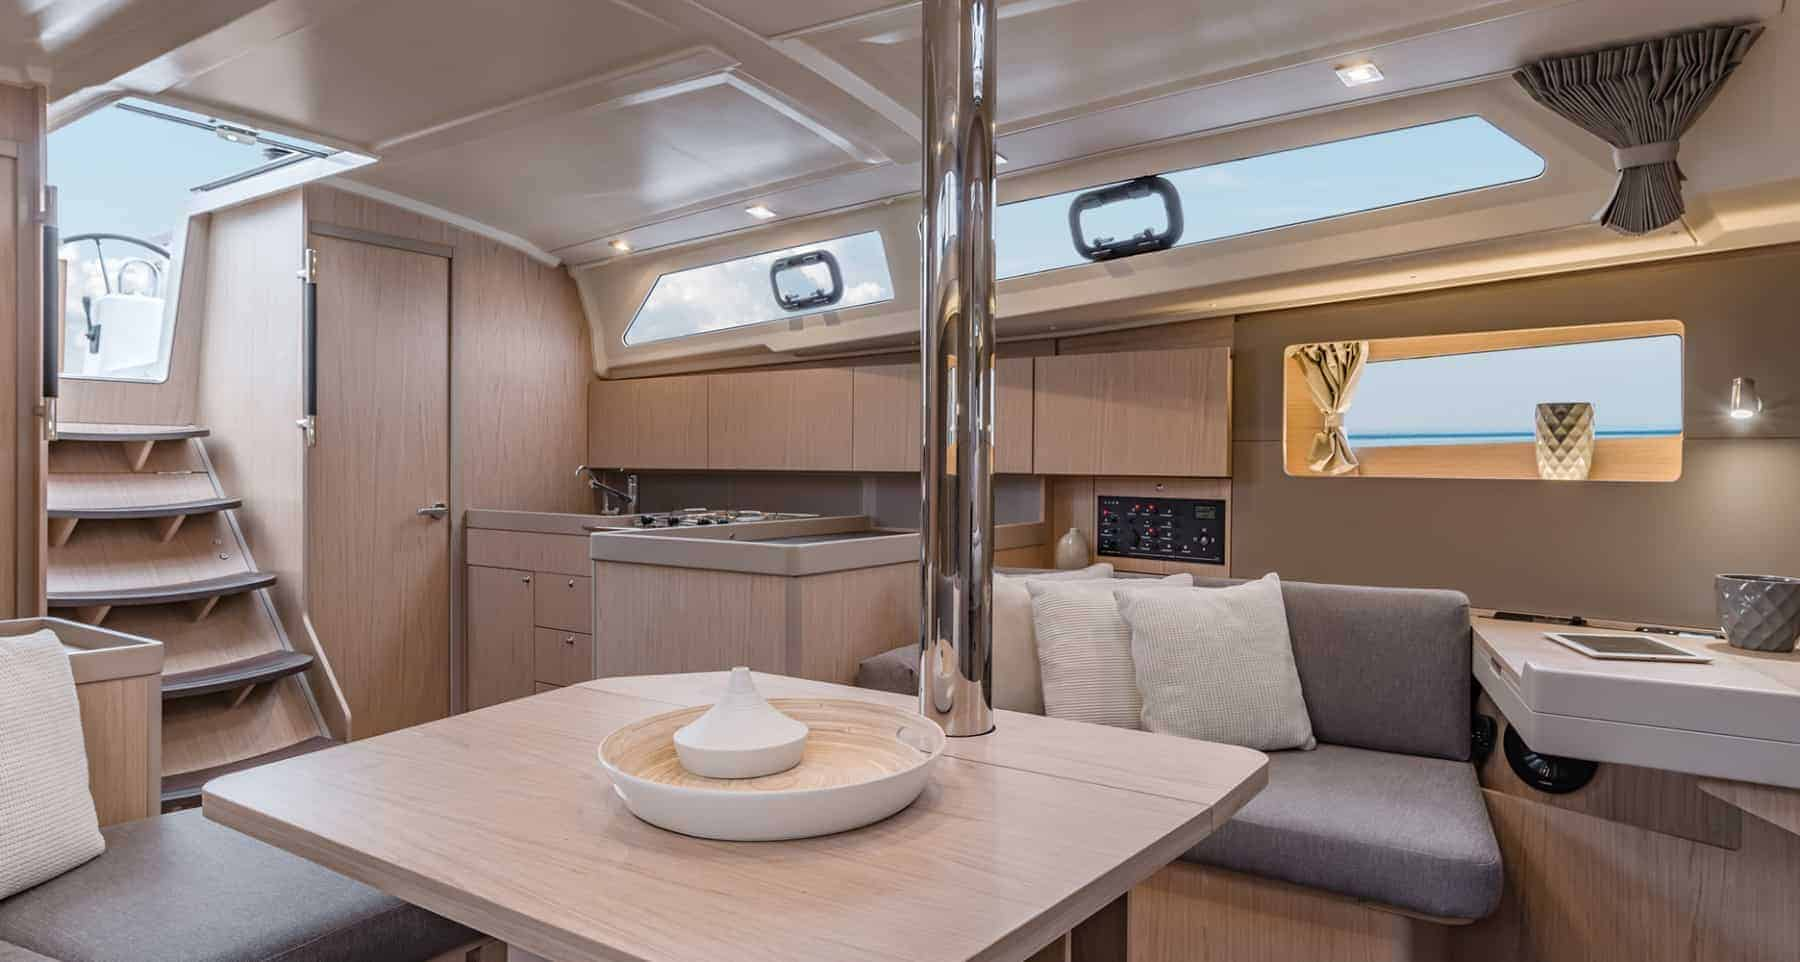 Beautiful kitchen area of the Benetau Oceanis 41.1